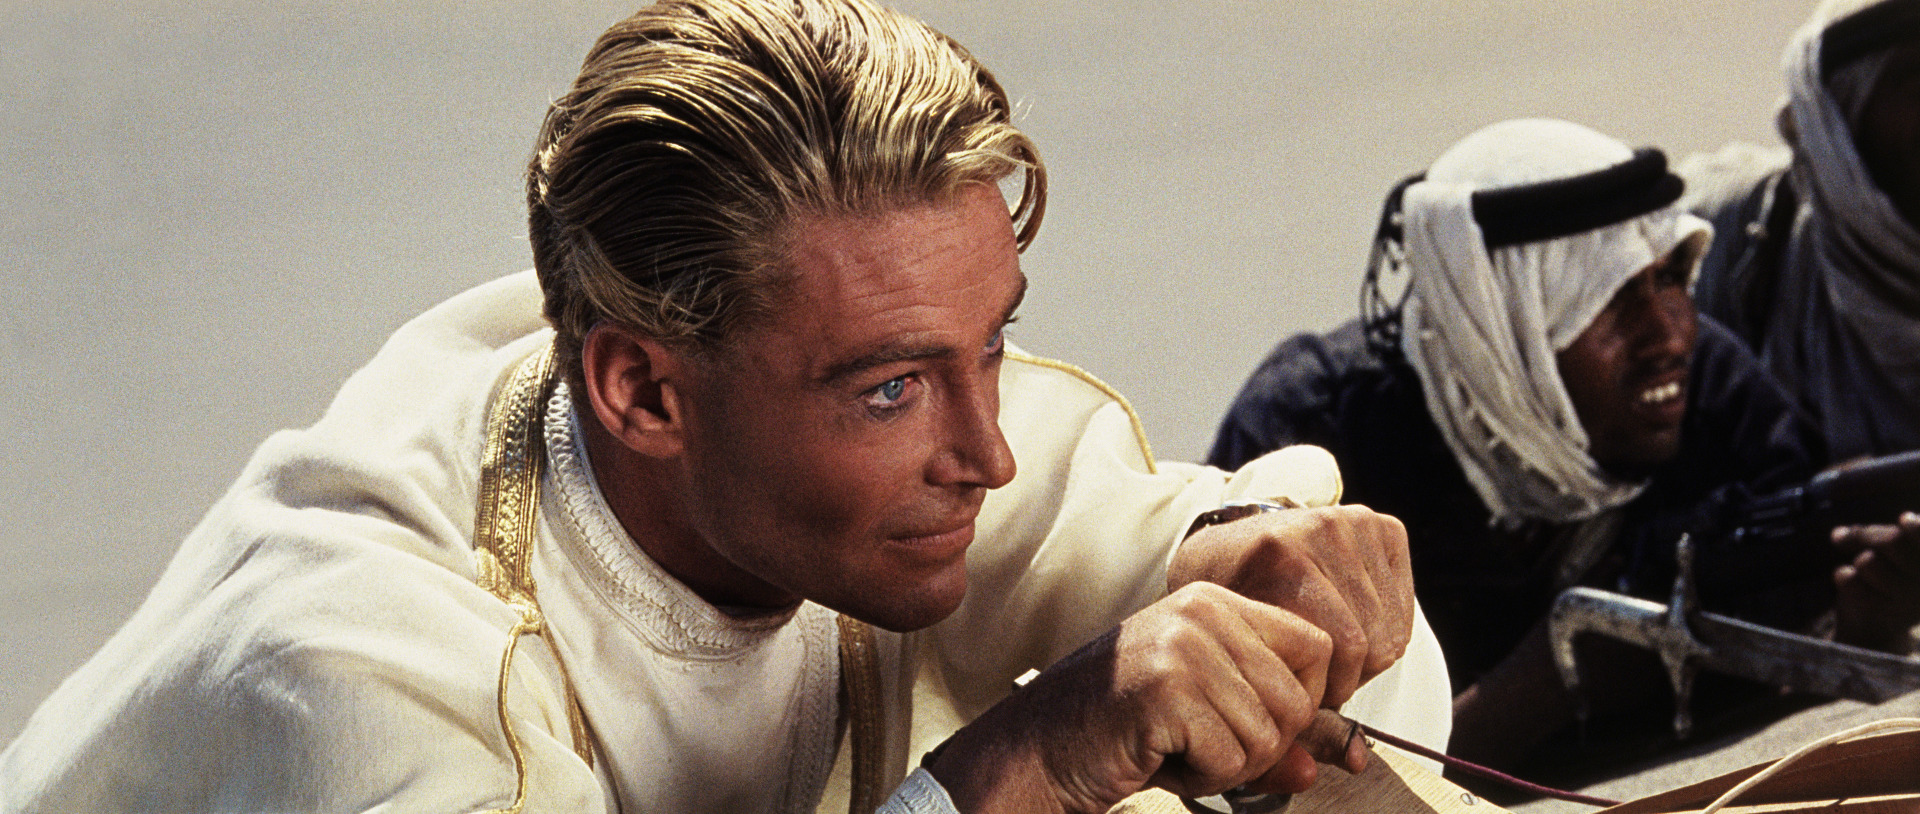 Peter O'Toole est Lawrence d'Arabie dans le film de David Lean